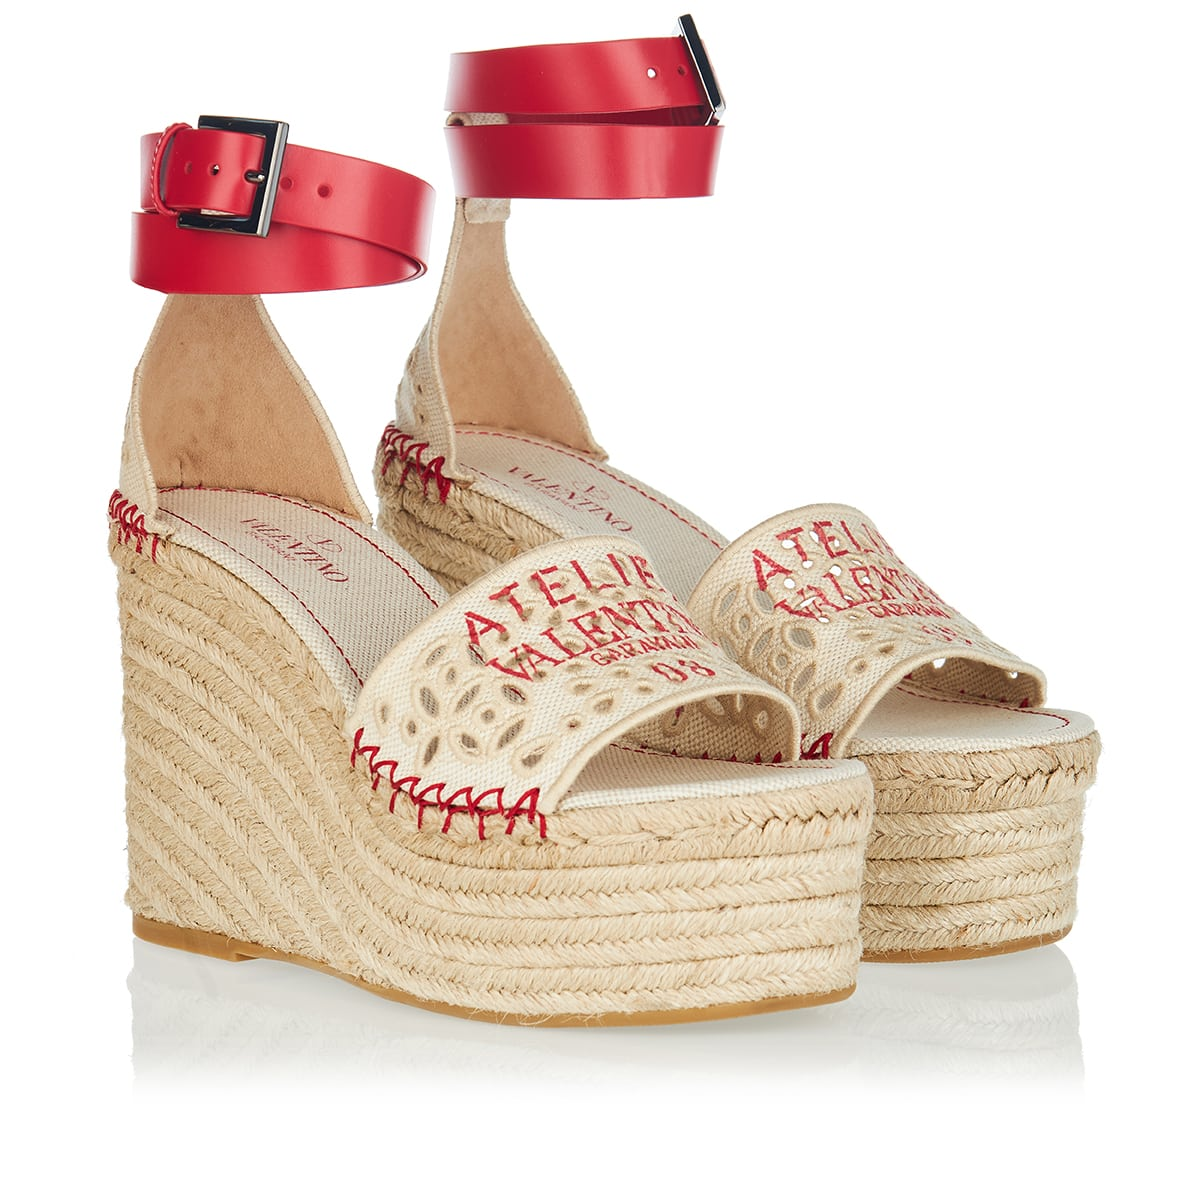 Atelier Shoes 08 San Gallo Edition wedges